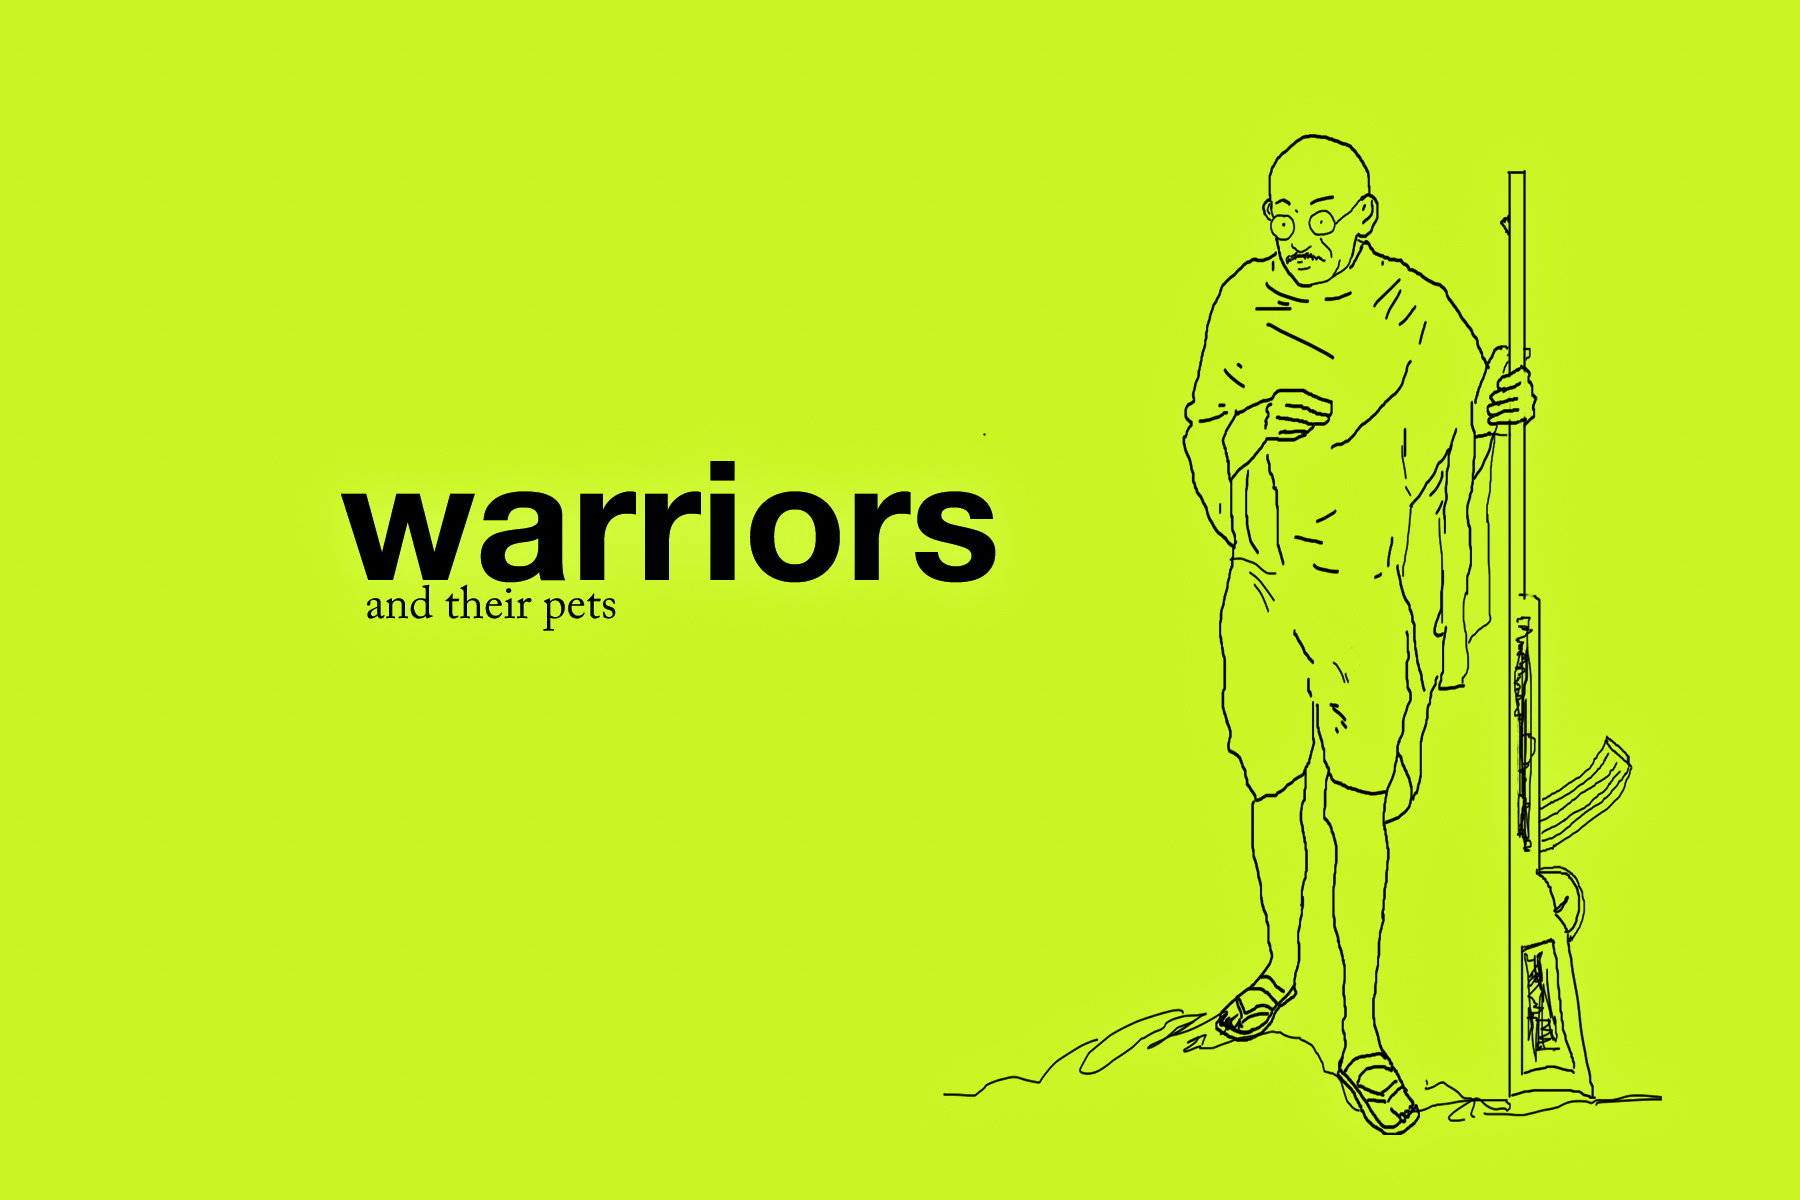 Warriors and their pets